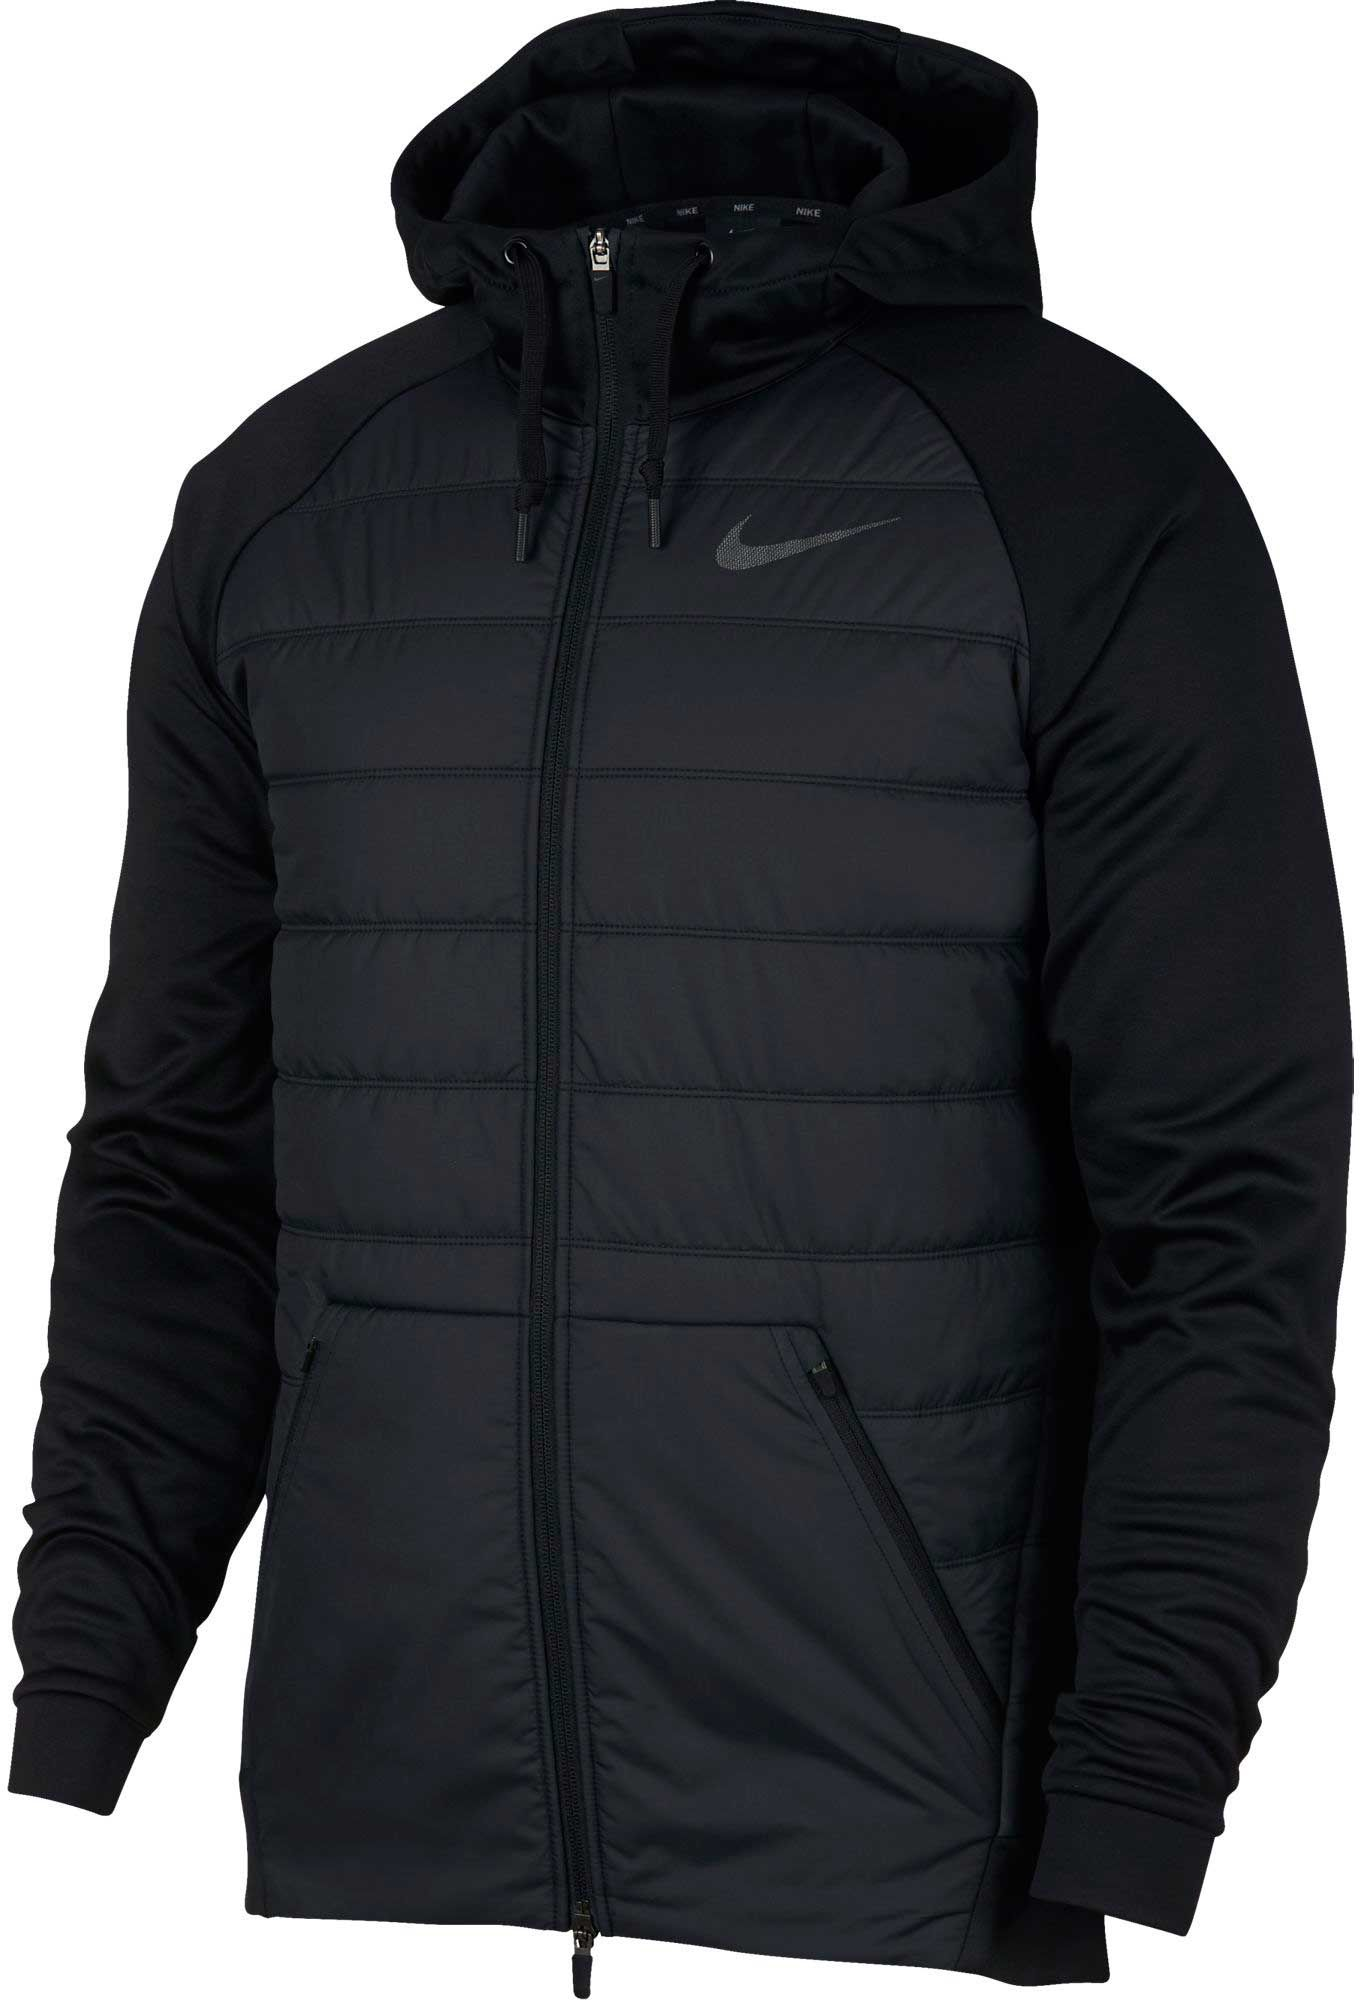 Men's Winter Coats Puffer & Quilted Jackets | DICK'S Sporting Goods : black quilted jacket mens - Adamdwight.com